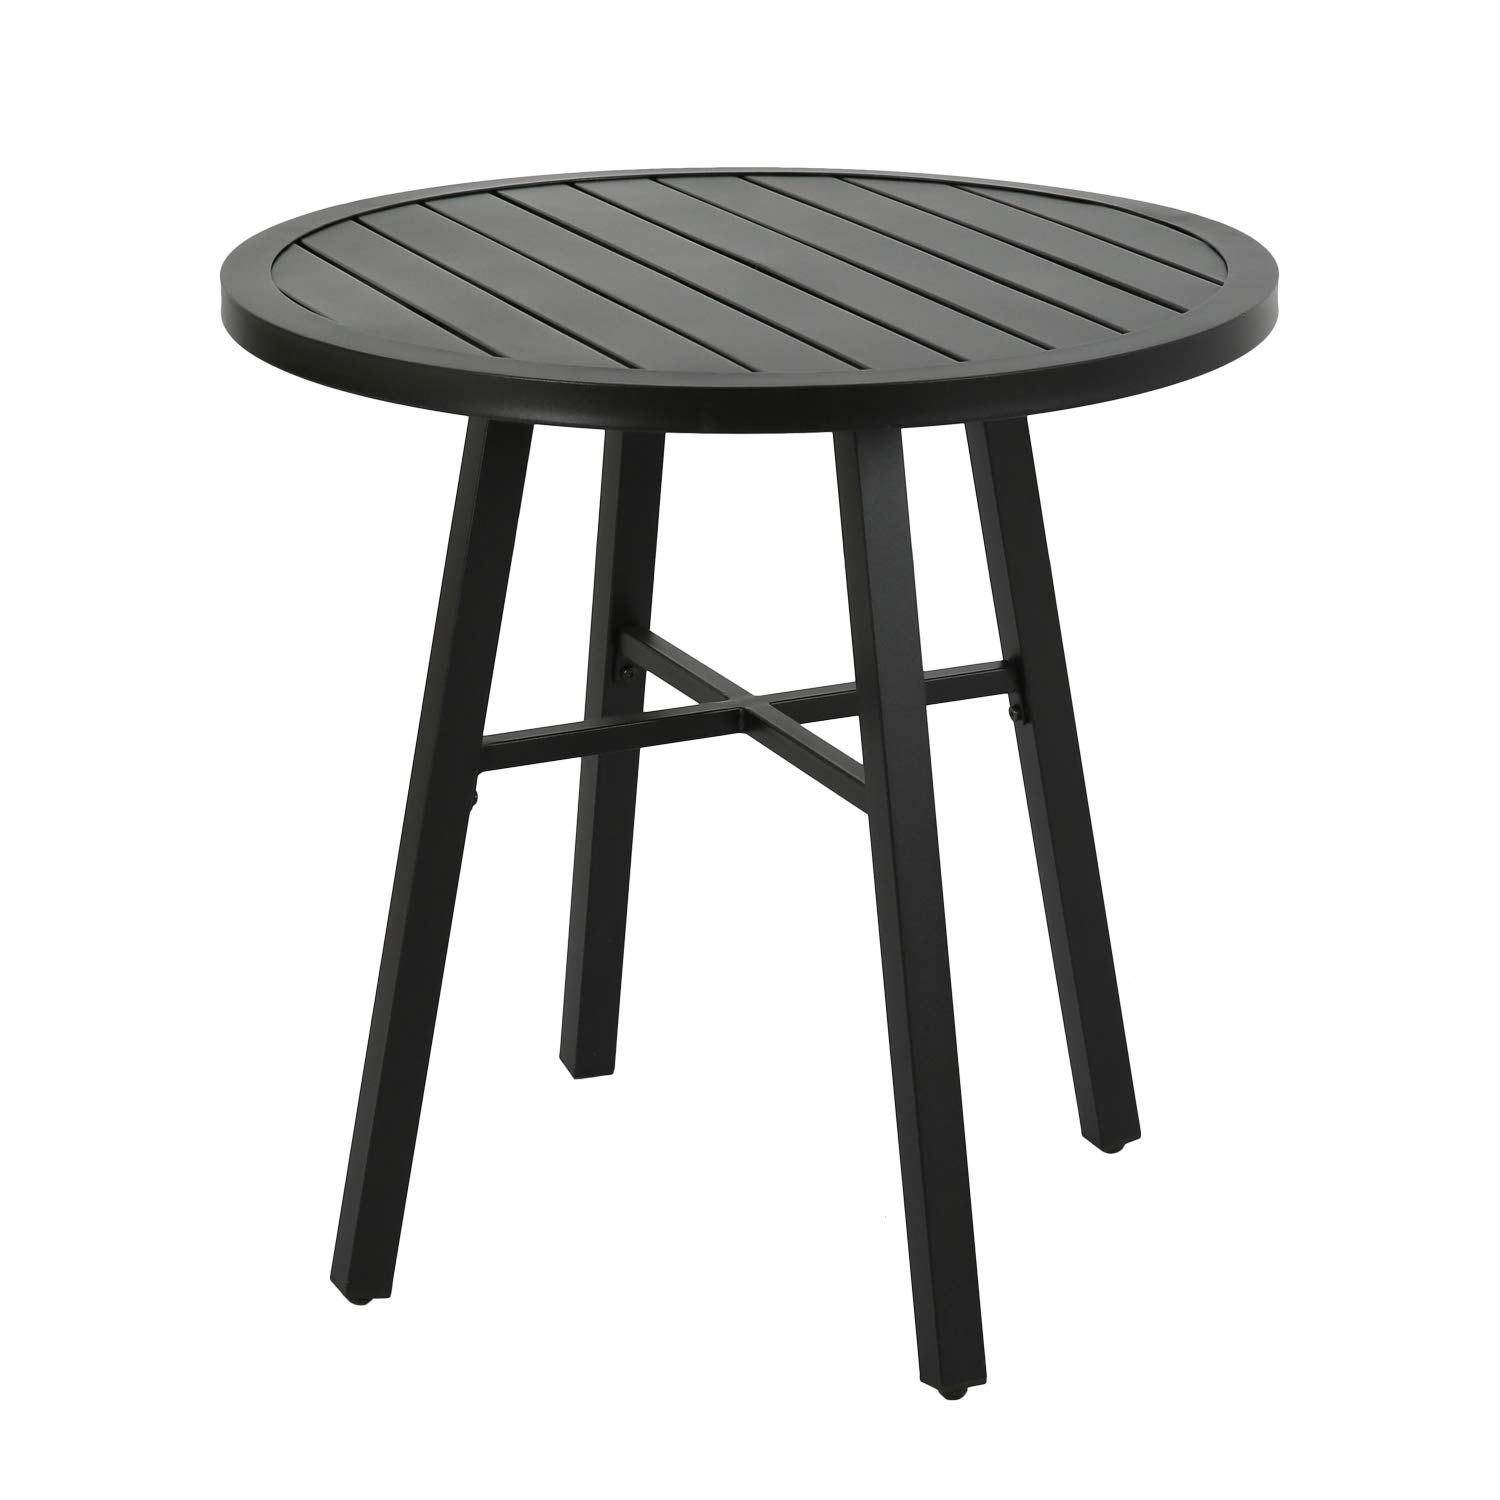 Ulax furniture Outdoor Round Side Table, Patio Coffee Bistro Table by Ulax furniture (Image #1)